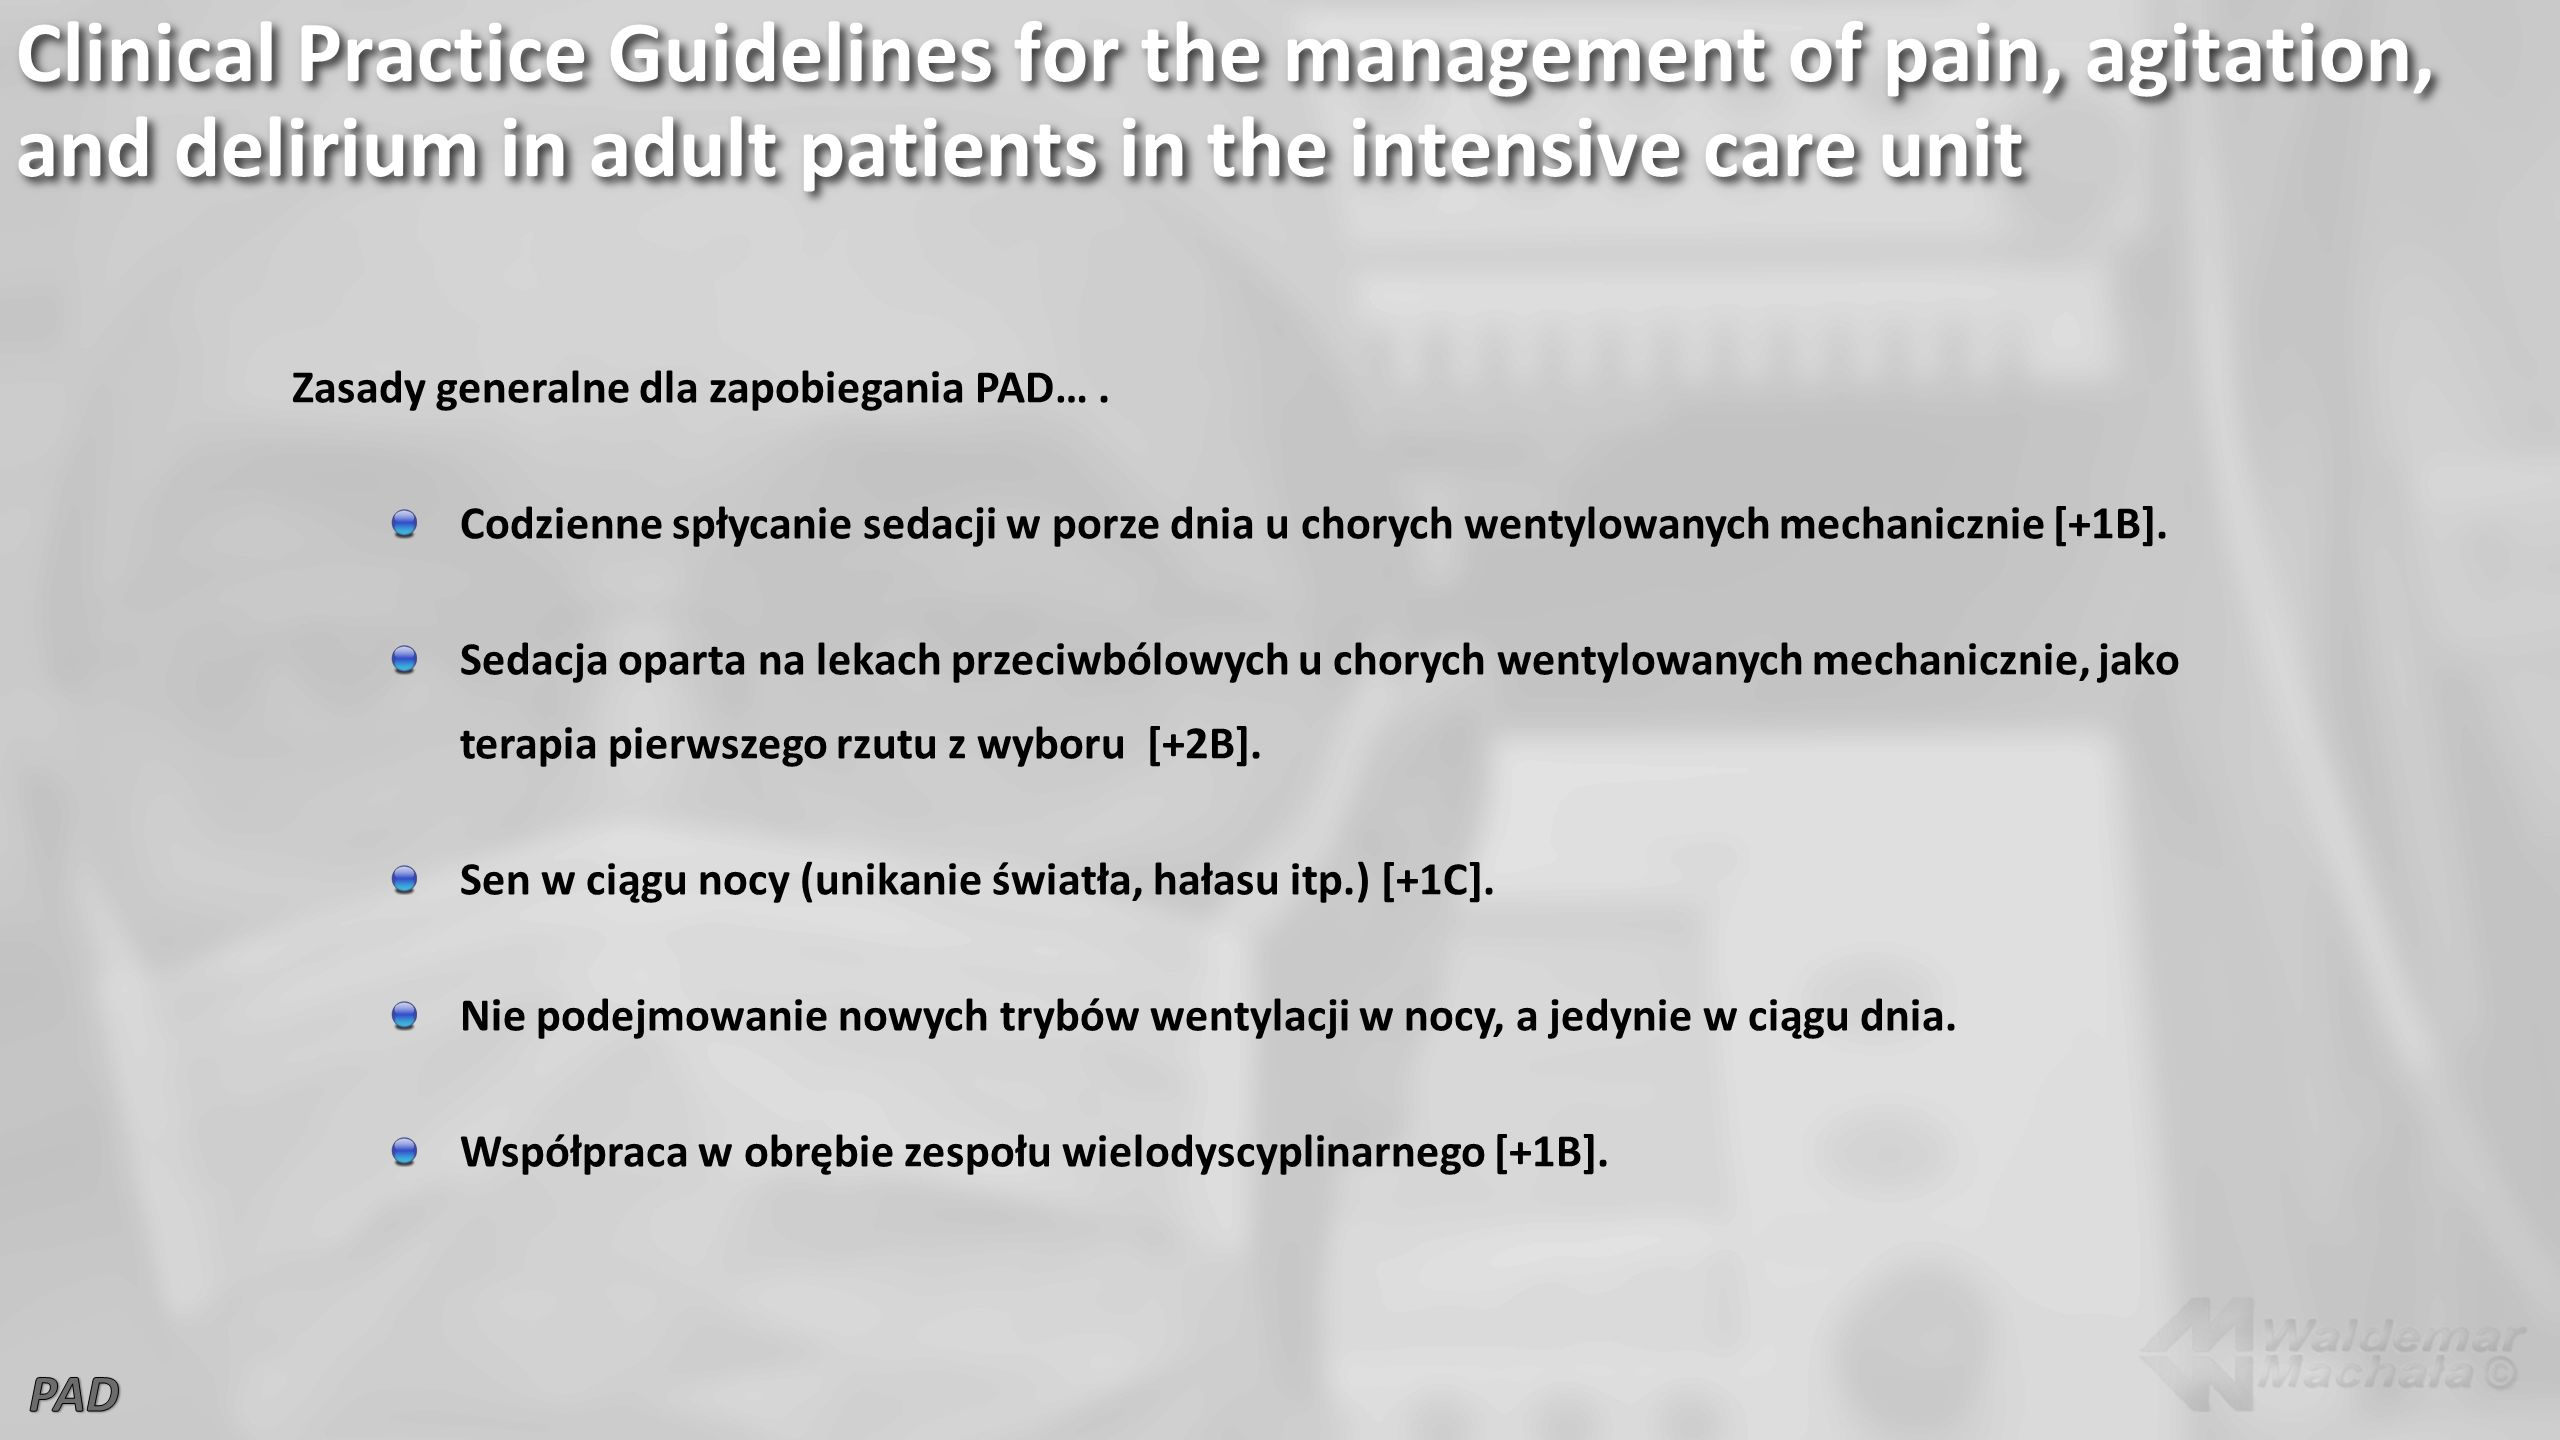 Clinical Practice Guidelines for the management of pain, agitation, and delirium in adult patients in the intensive care unit Zasady generalne dla zap